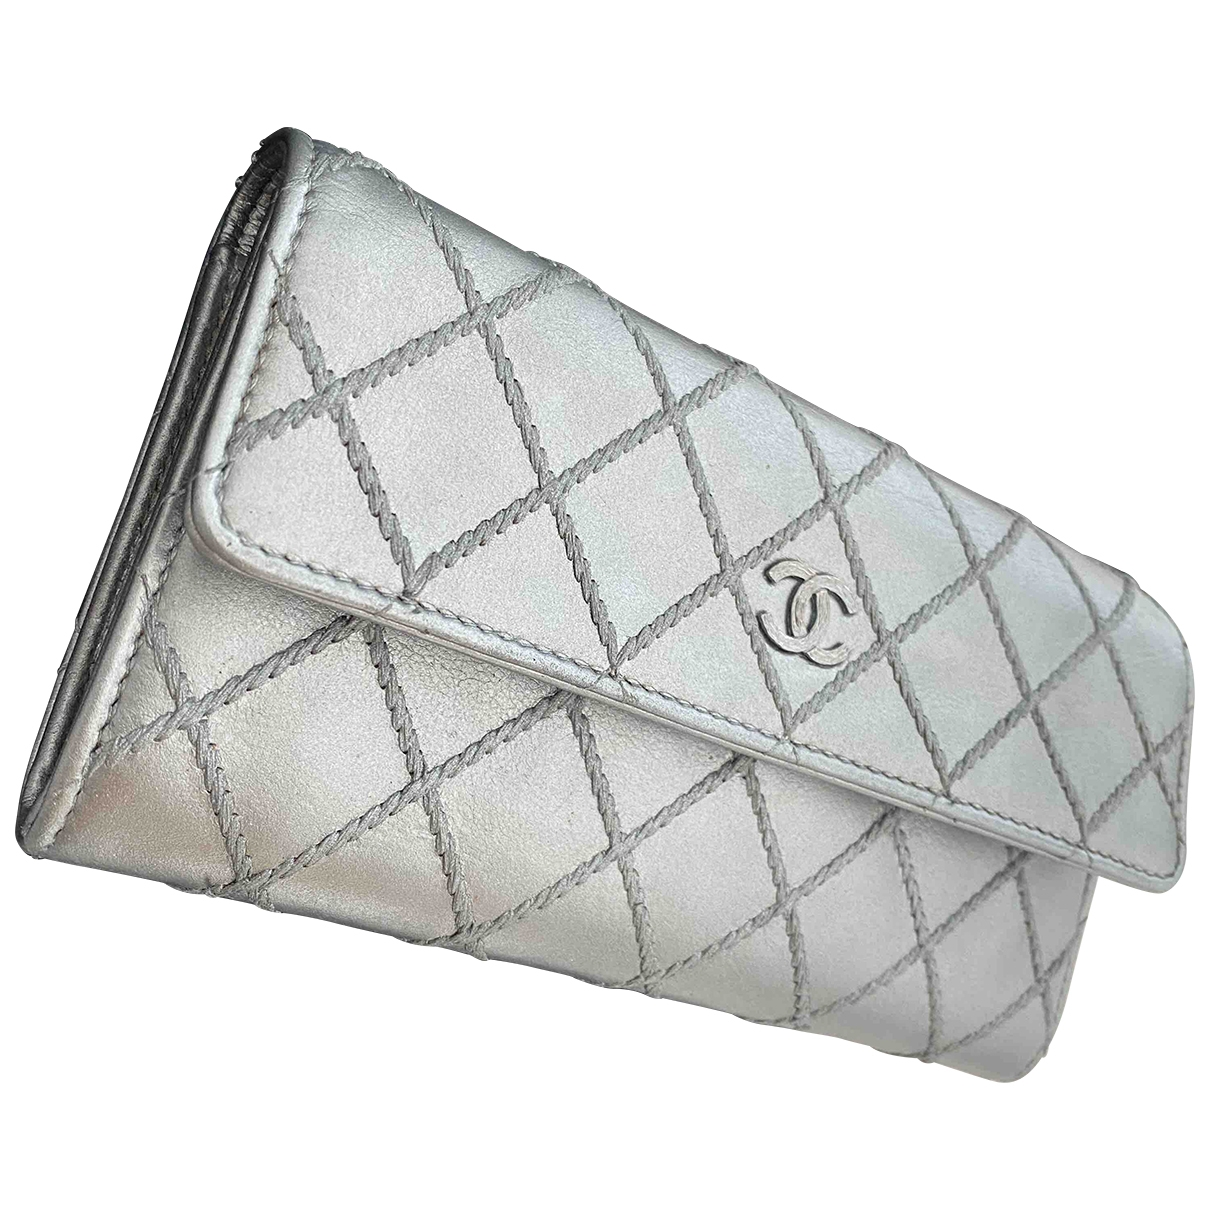 Chanel \N Silver Leather wallet for Women \N